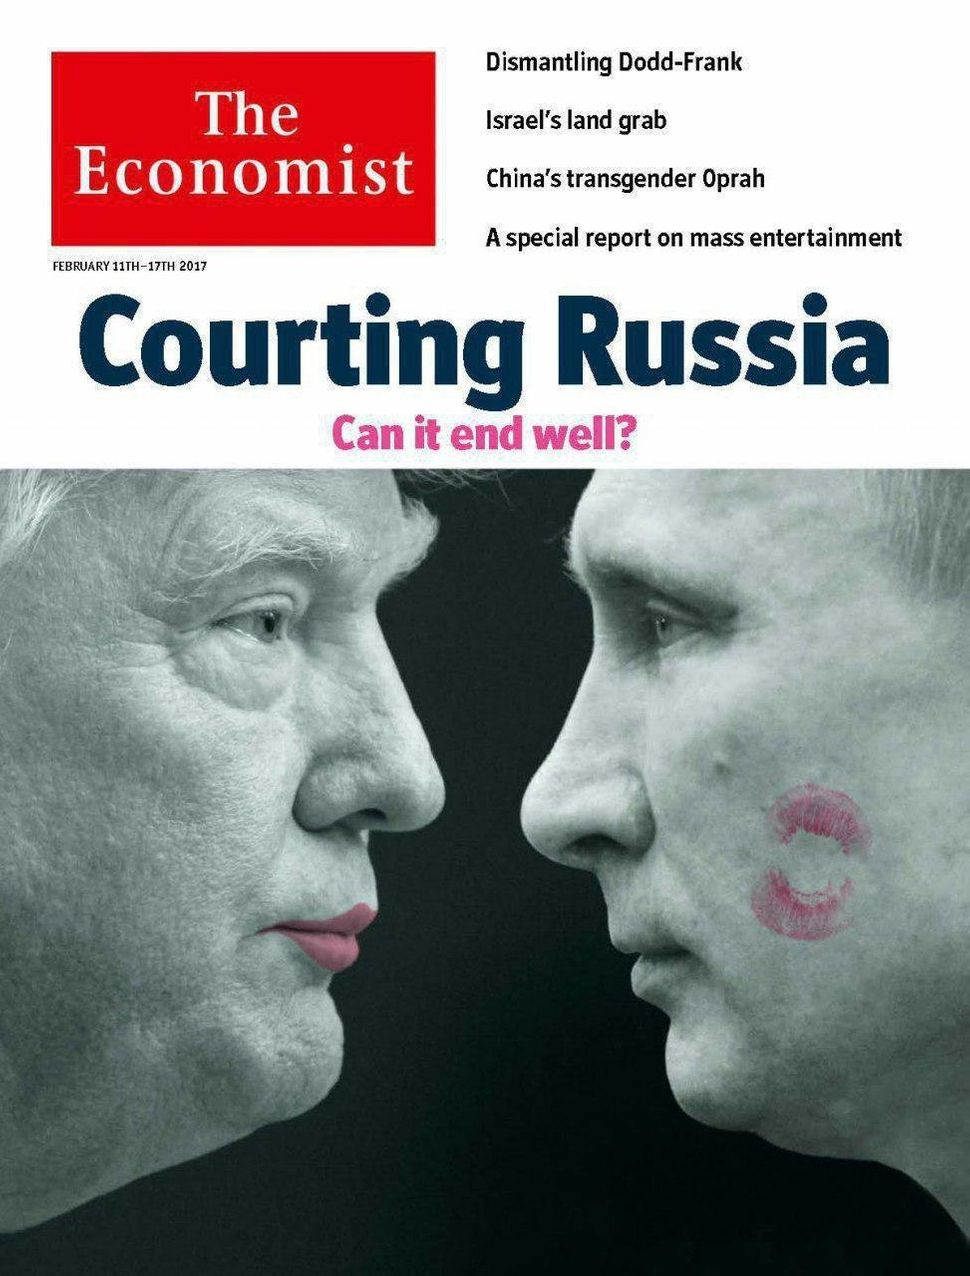 A lipstick-wearing Donald Trump puckers up to Vladimir Putin on the cover of The